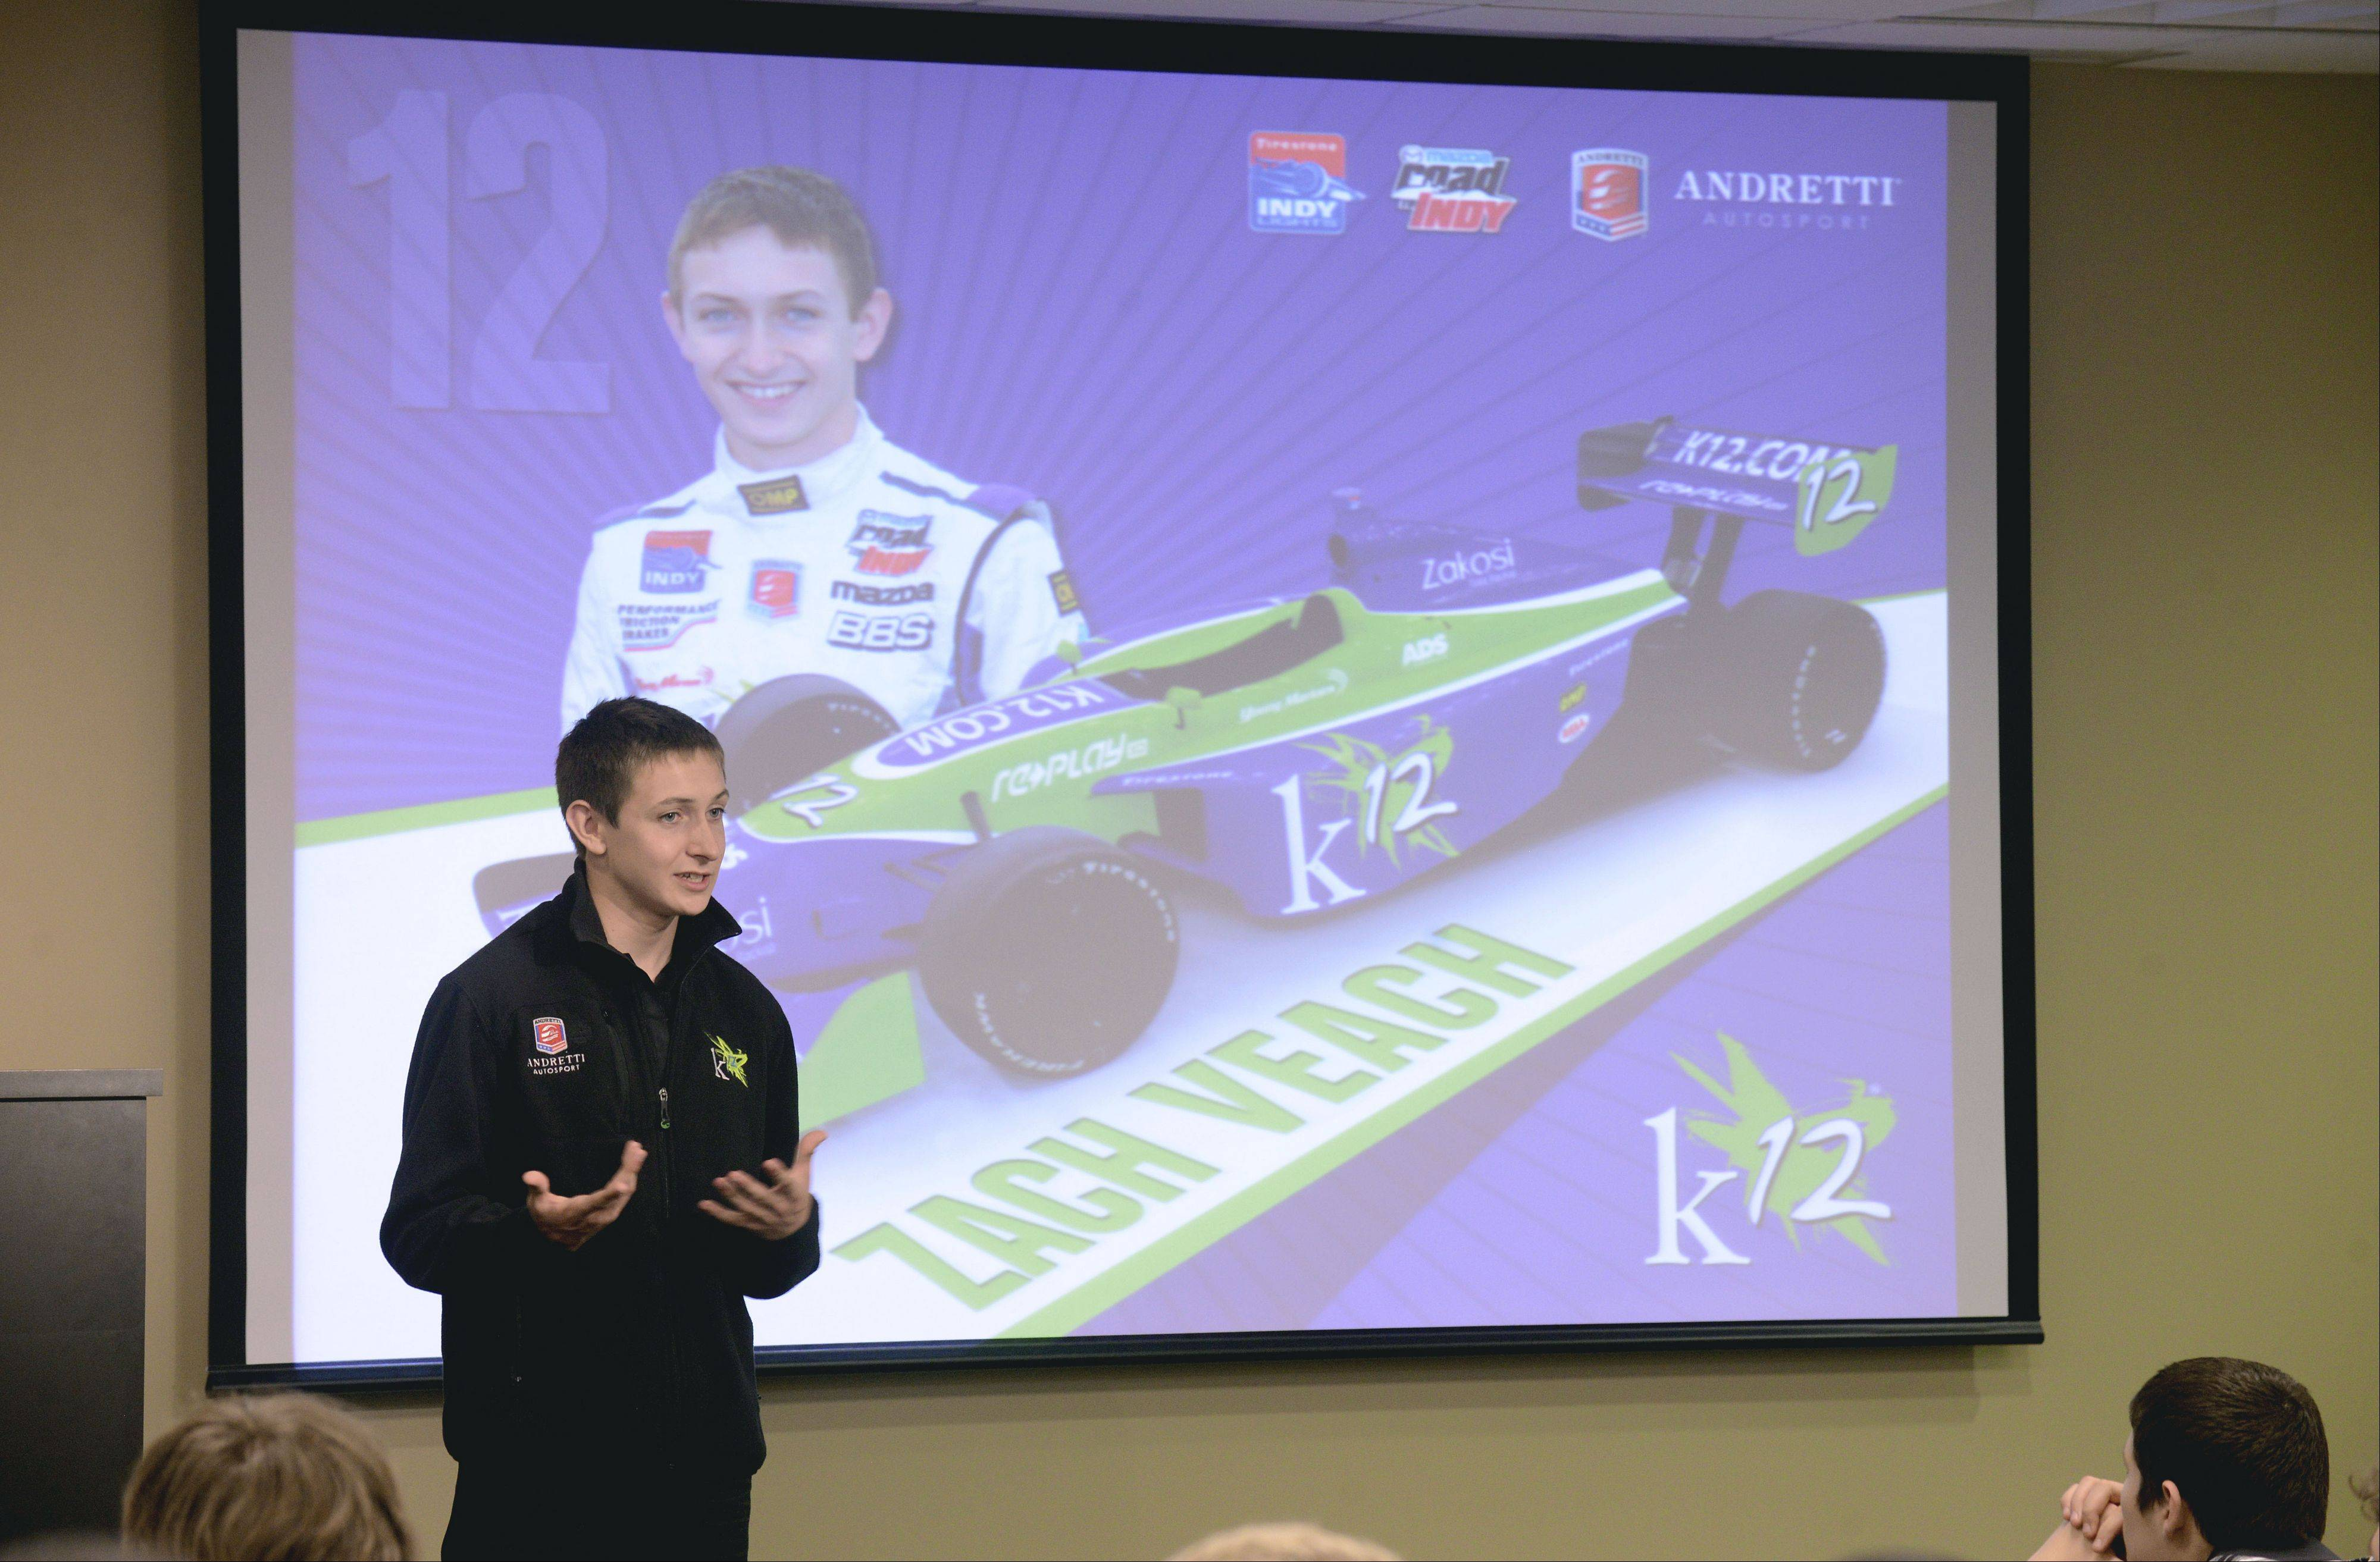 Students from Elk Grove, Buffalo Grove and John Hersey high schools joined manufacturing executives to listen to 18-year-old IndyCar driver Zach Veach talk about is career during a visit to DMG/Mori Seiki in Hoffman Estates.